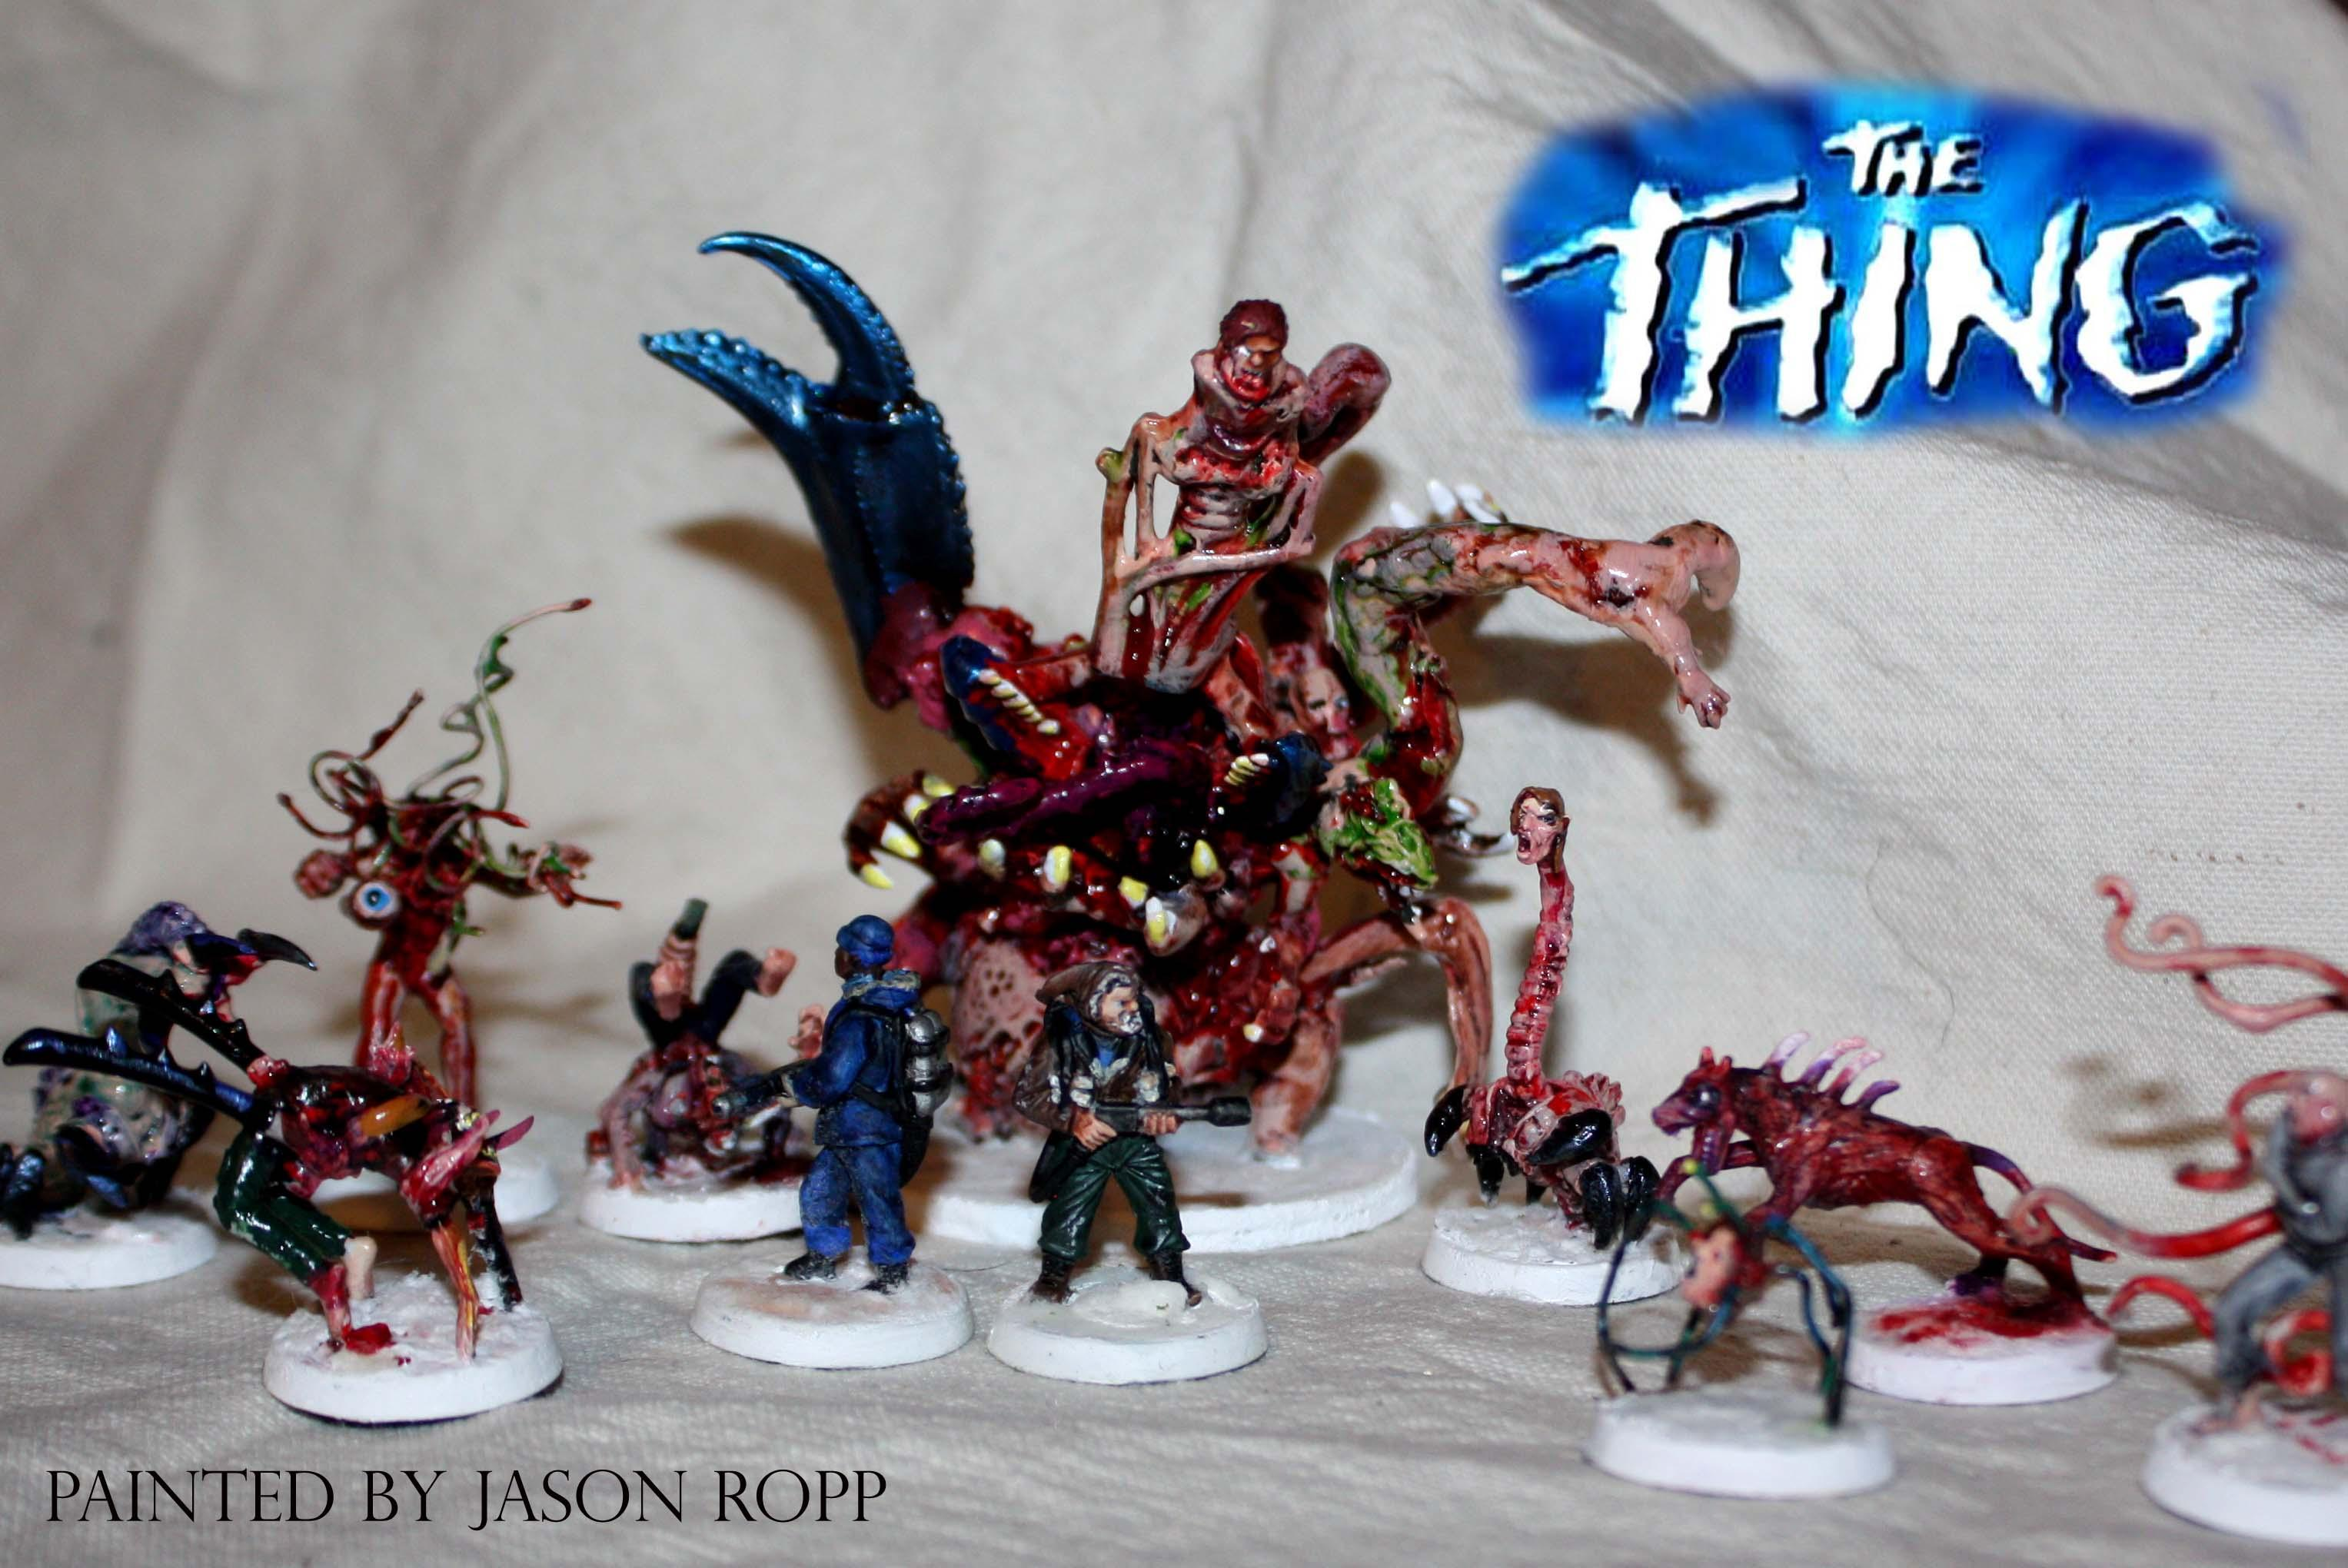 28mm, Alien, Alines Vs Predator, Avp, Conversion, From Another World, Horrorclix, Miniature, Miniatures, Monster, The Thing, Thing, Things, Wargame, Warhammer 40,000, Weird